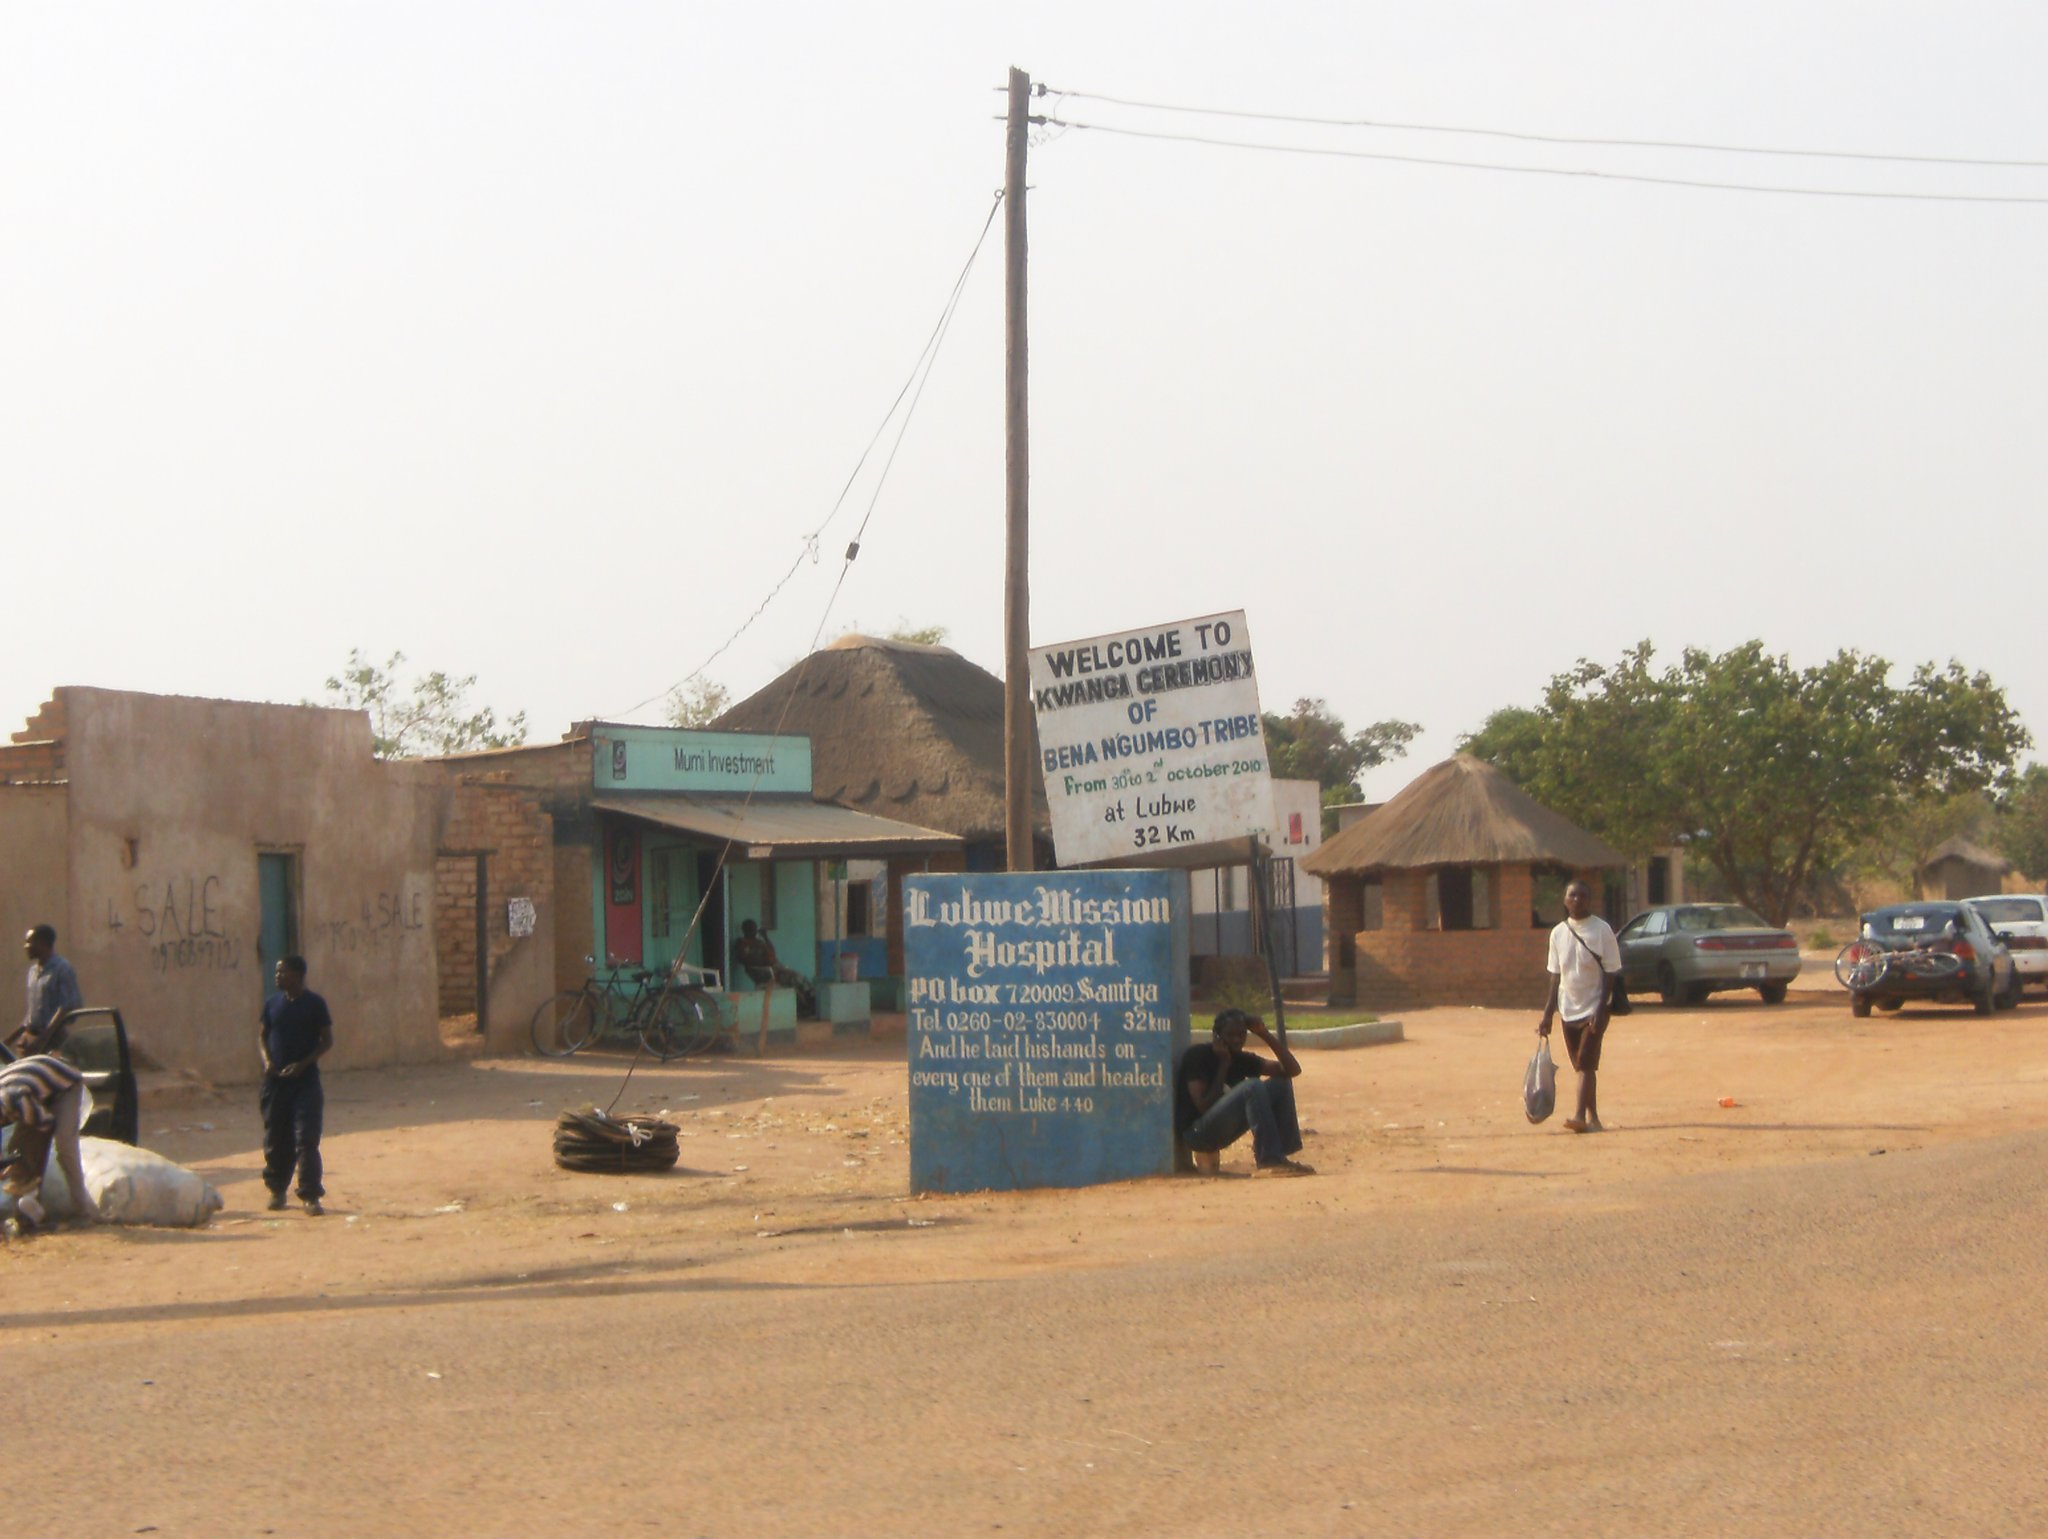 lubwe-mission-hospital